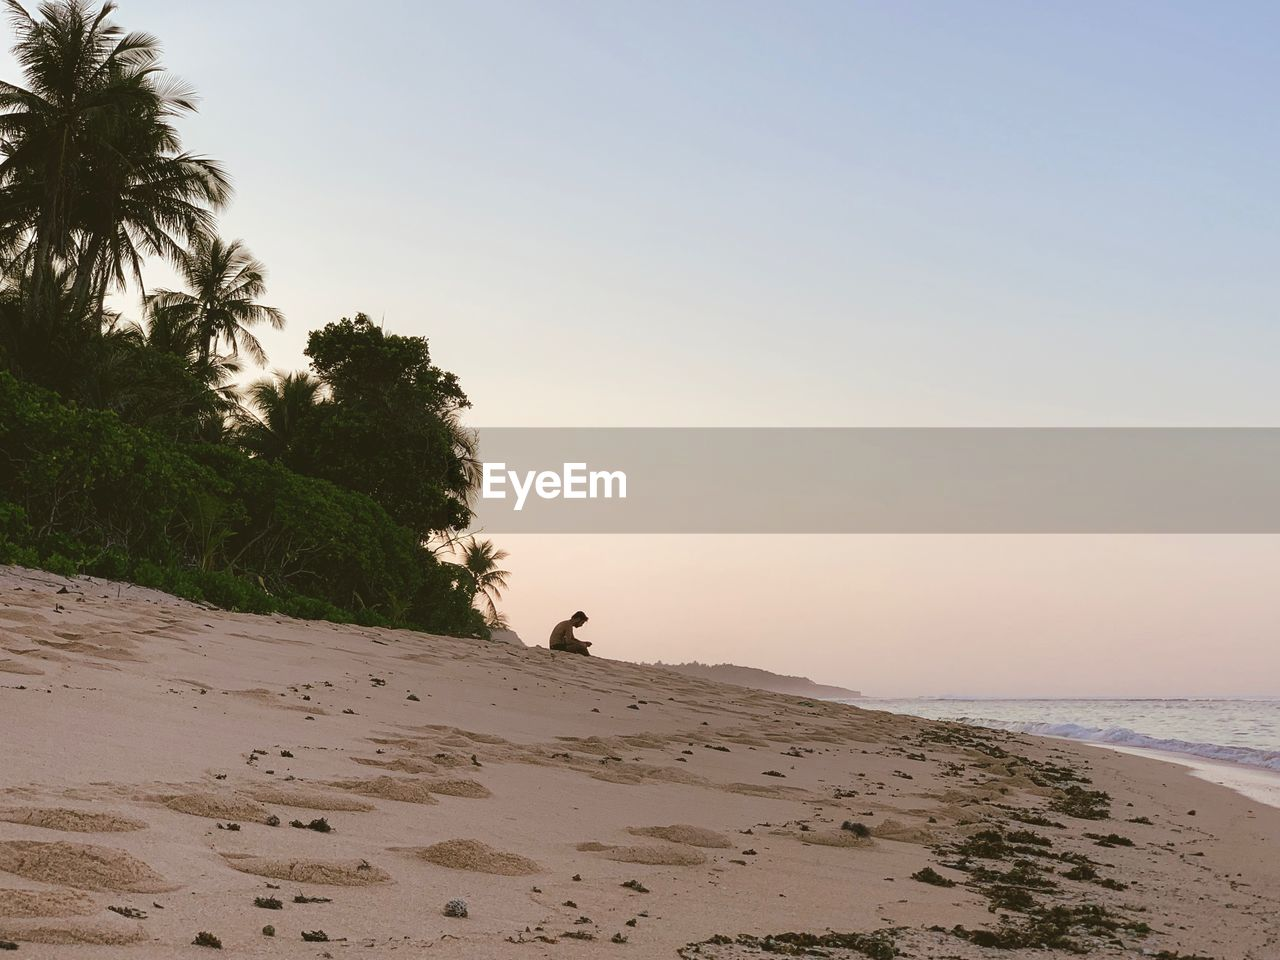 beach, land, sea, sky, water, sand, beauty in nature, tree, scenics - nature, horizon, nature, tranquility, horizon over water, clear sky, plant, tranquil scene, tropical climate, palm tree, copy space, outdoors